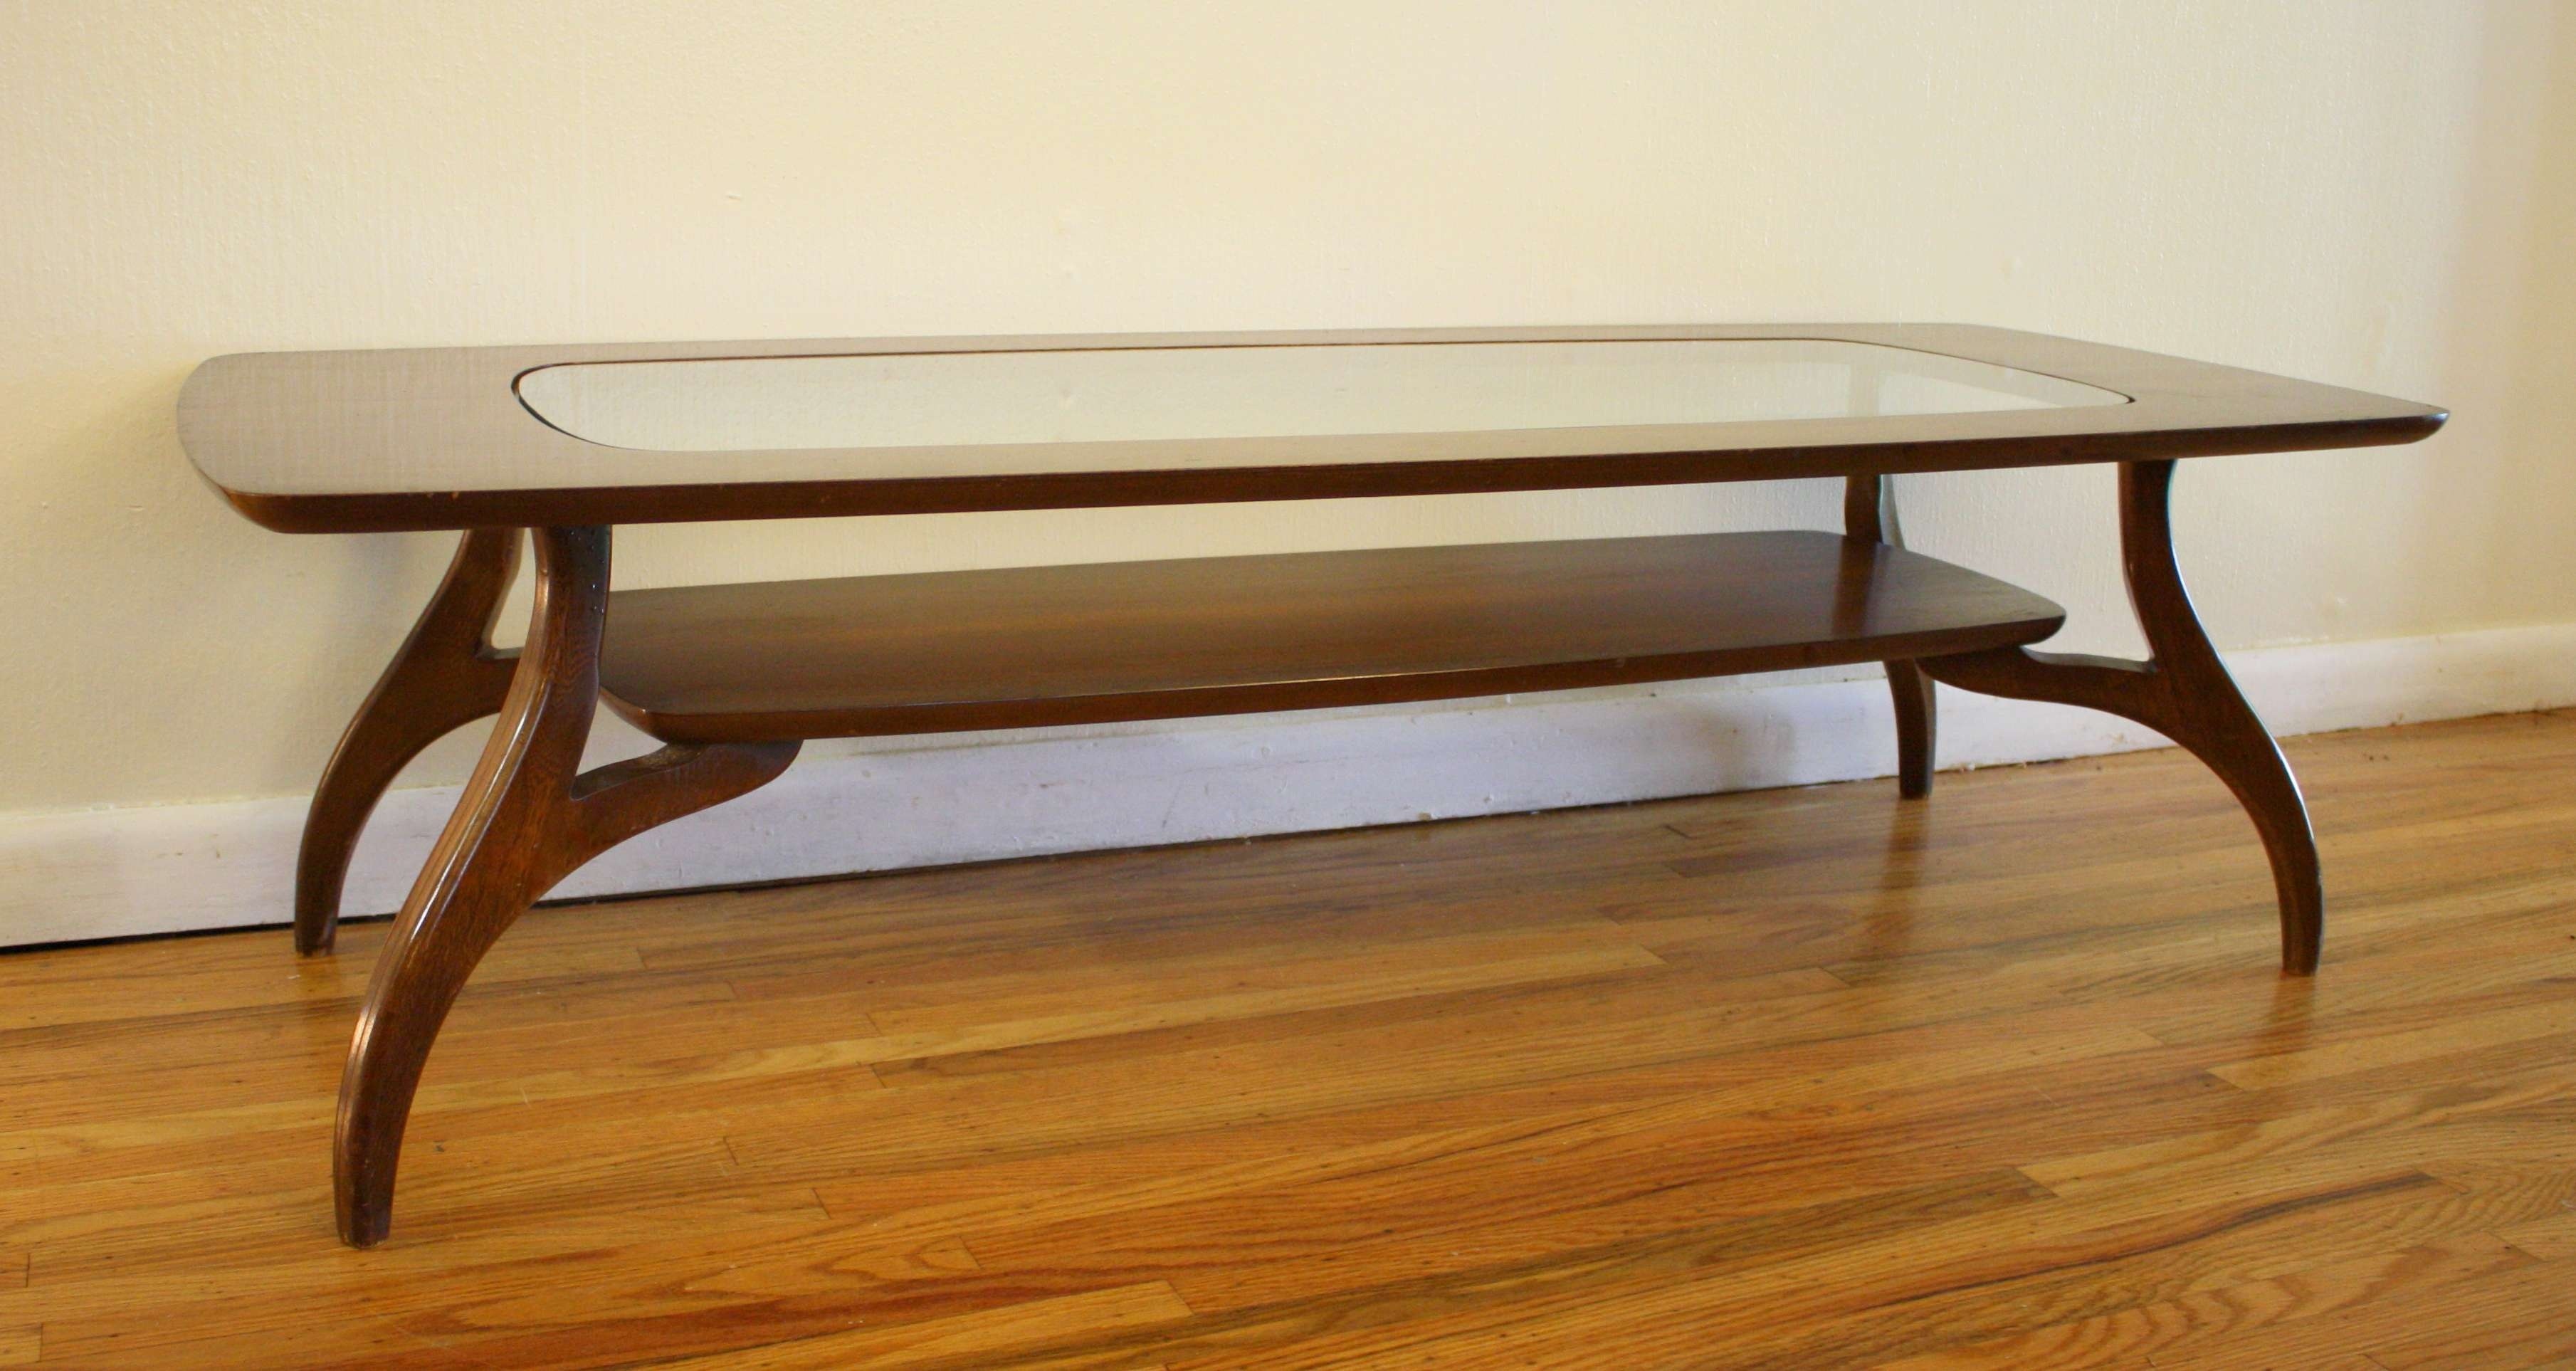 Picked Vintage Intended For Popular Vintage Glass Top Coffee Tables (View 14 of 20)